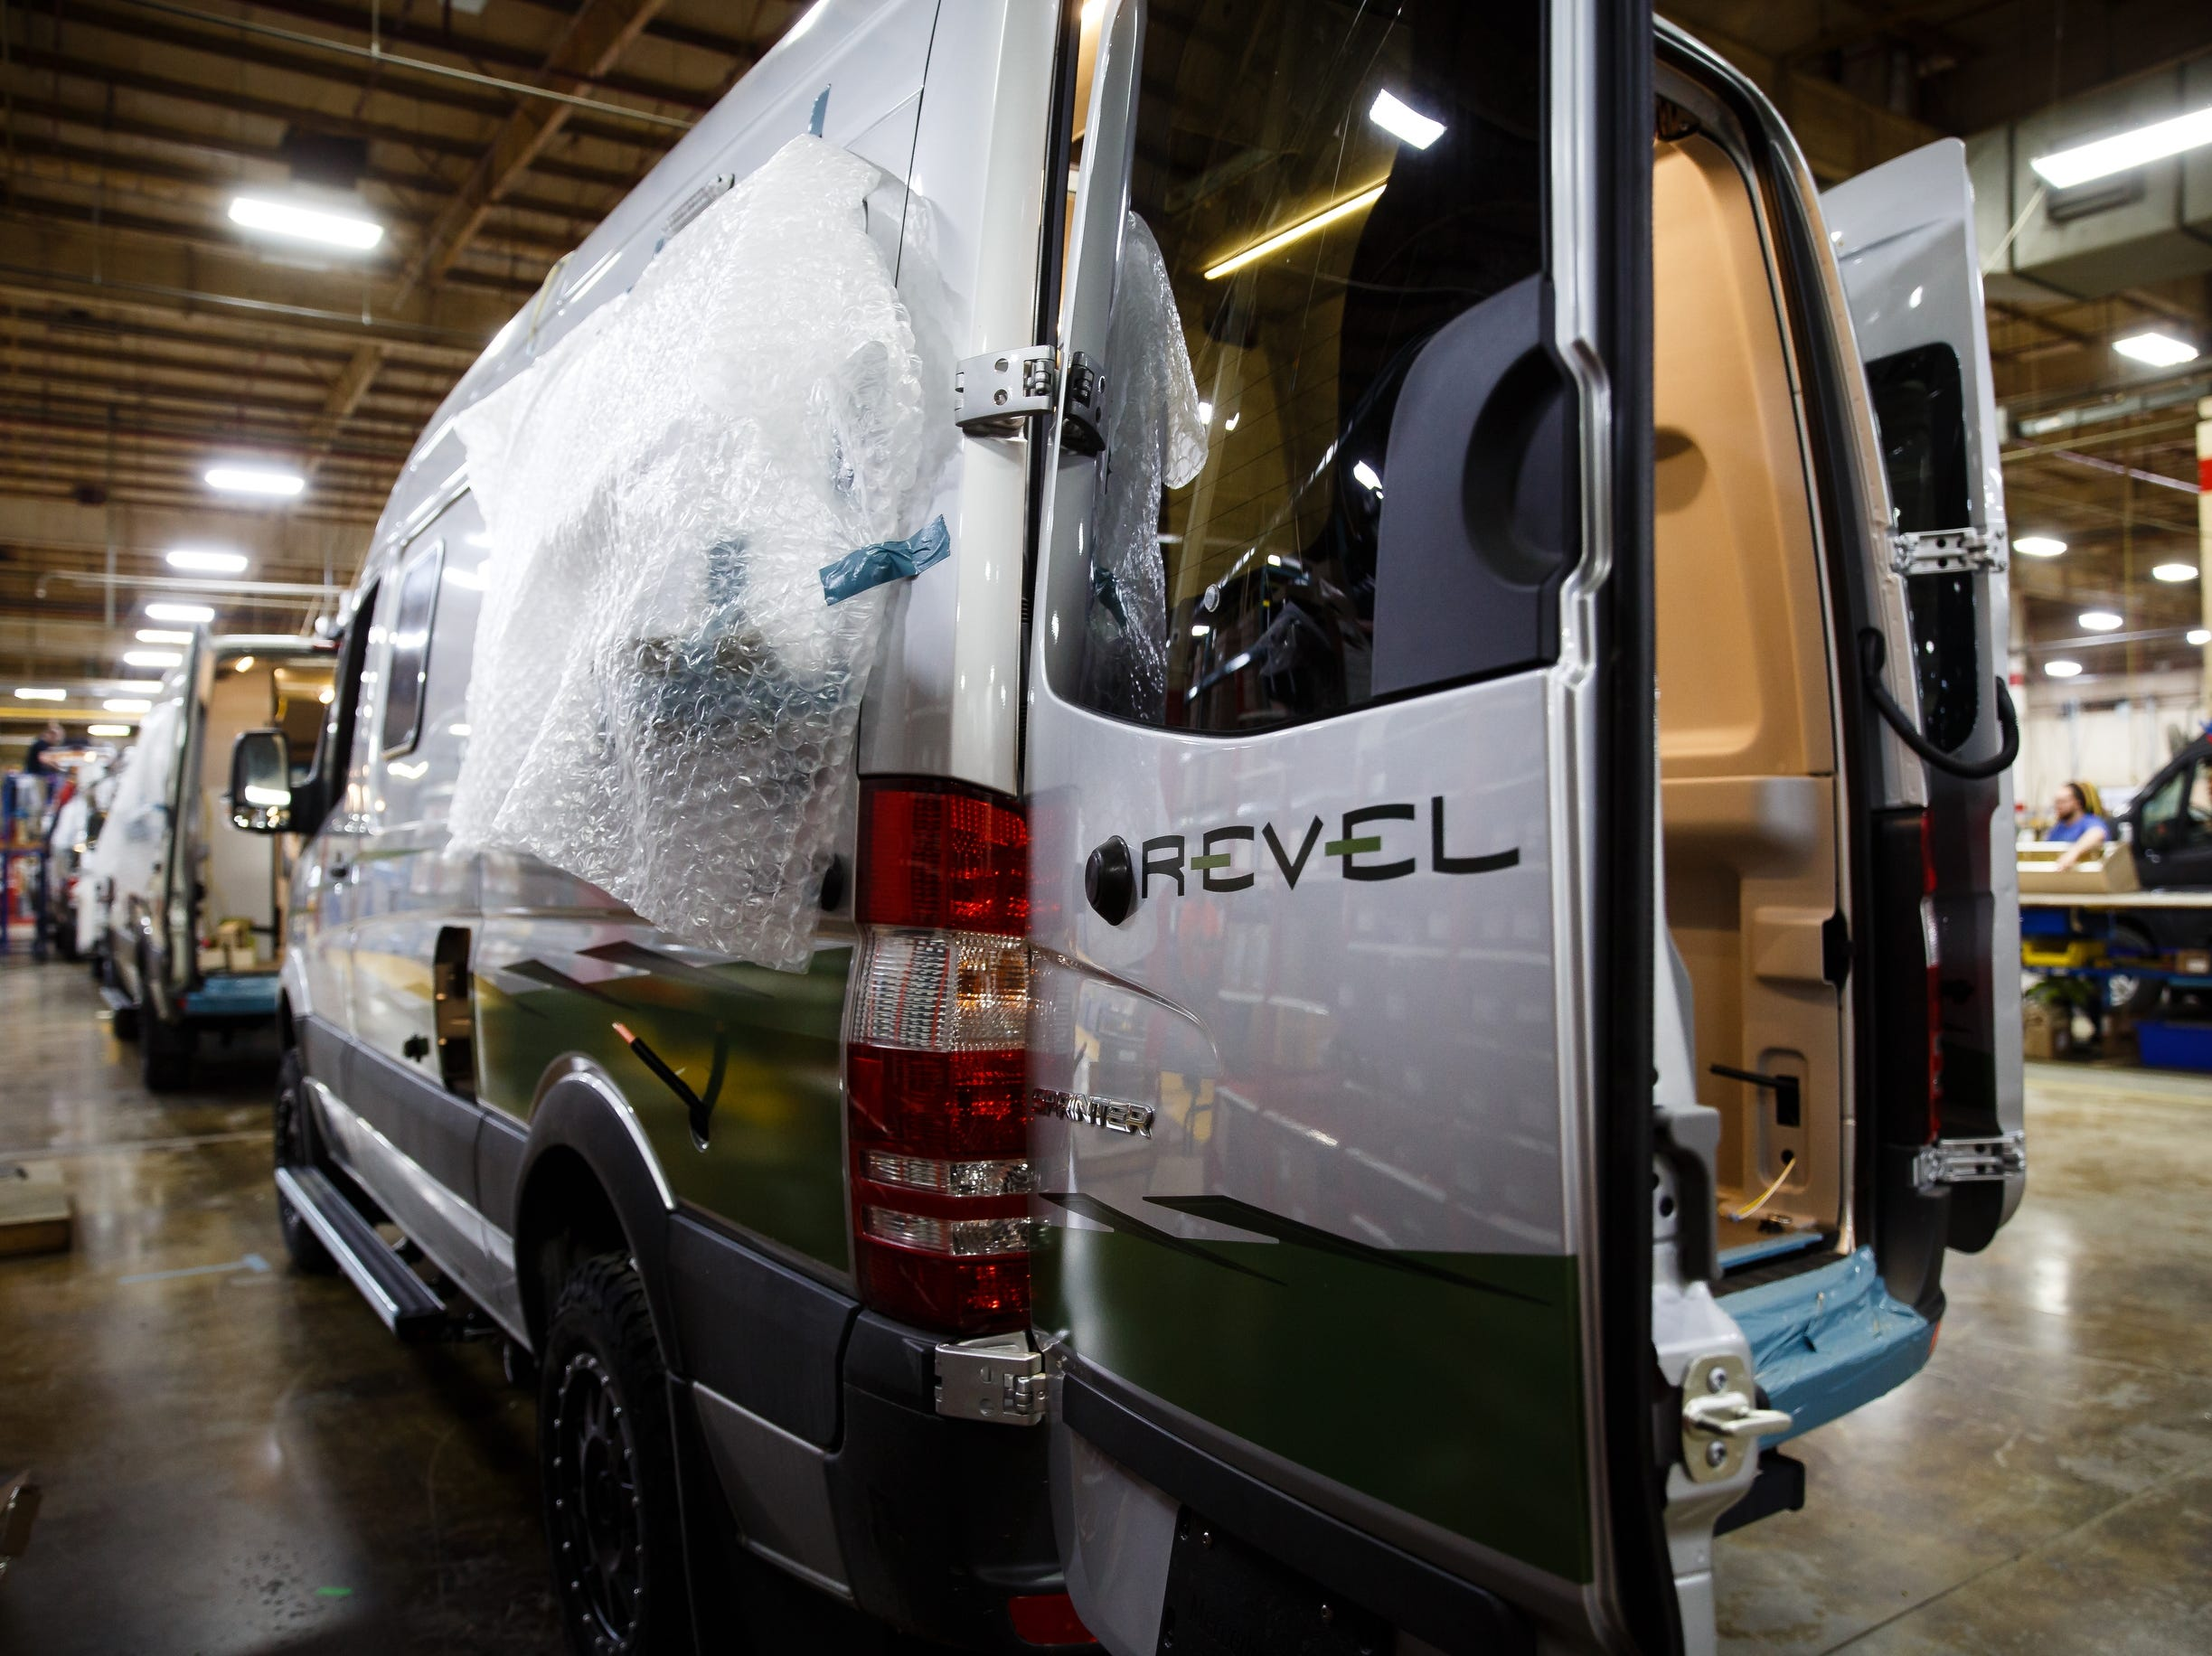 The Winnebago factory in Lake Mills where the new Revel RV is made alongside other Class B RV's on Wednesday, Dec. 5, 2018, in Lake Mills. The Revel, with its 4x4 and rugged nature has sparked the interest of outdoor enthusiasts and has helped the motor home manufacture rebound from poor sales during the recession.